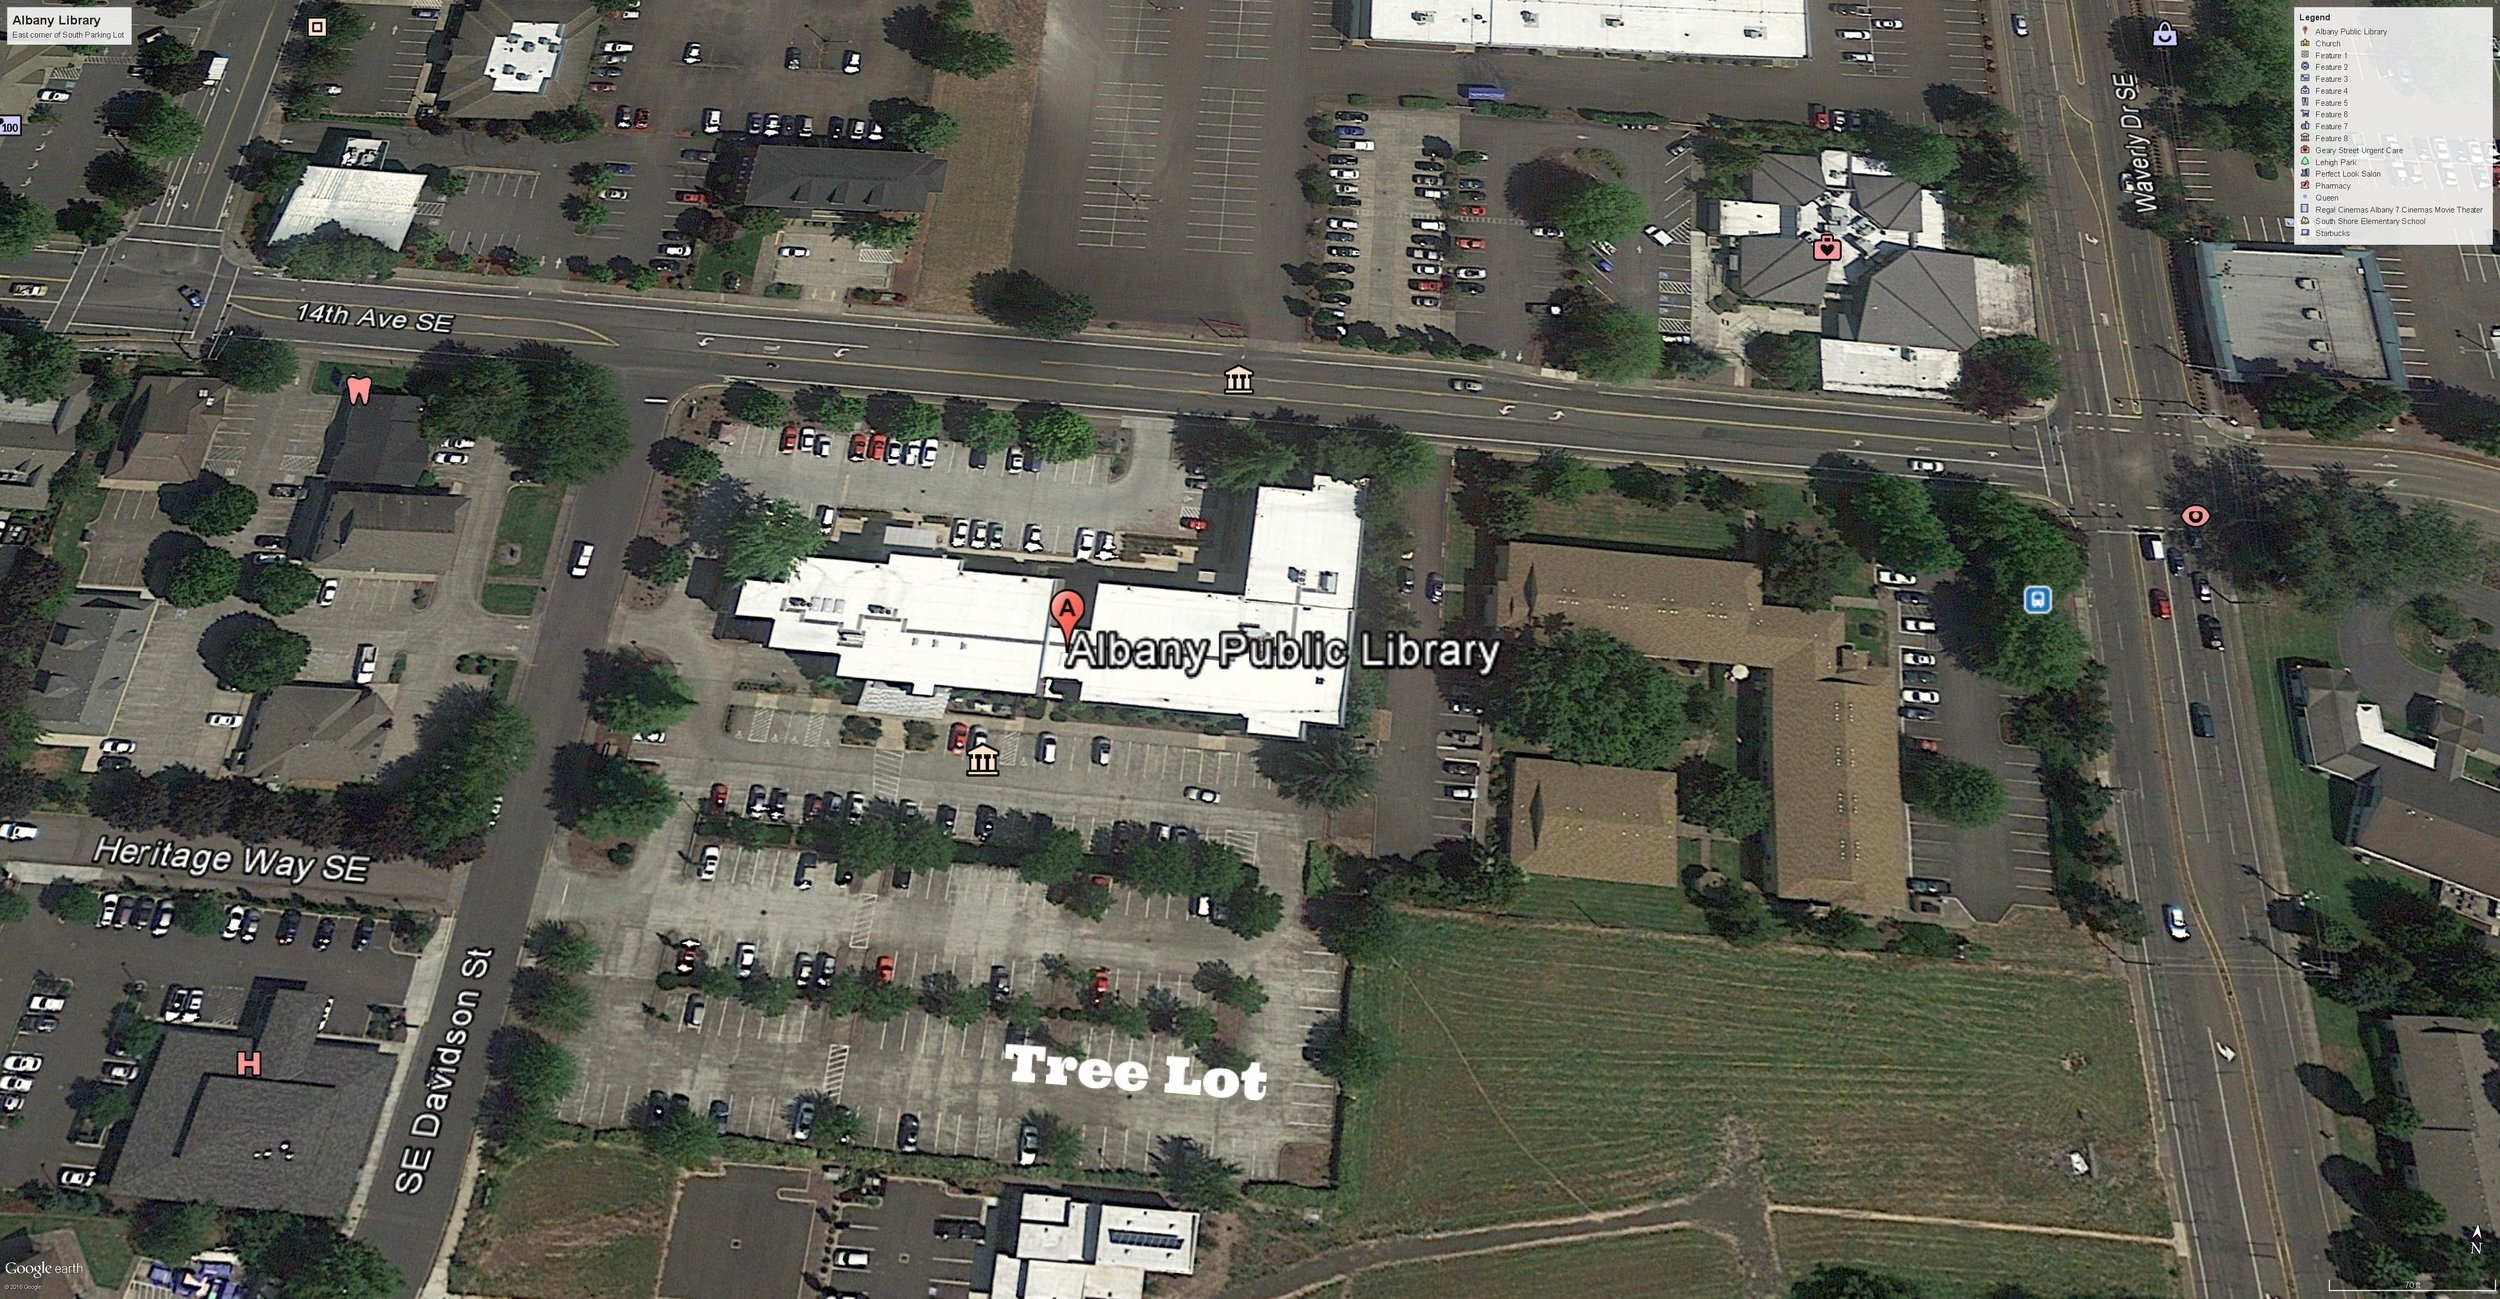 Albany Library (building center). Christmas Tree Lot (bottom center), 14th Ave SE running west (upper left) to east (upper right) and Waverly running north (top right) to south (bottom right). Parking lot entry on Davidson (center left).